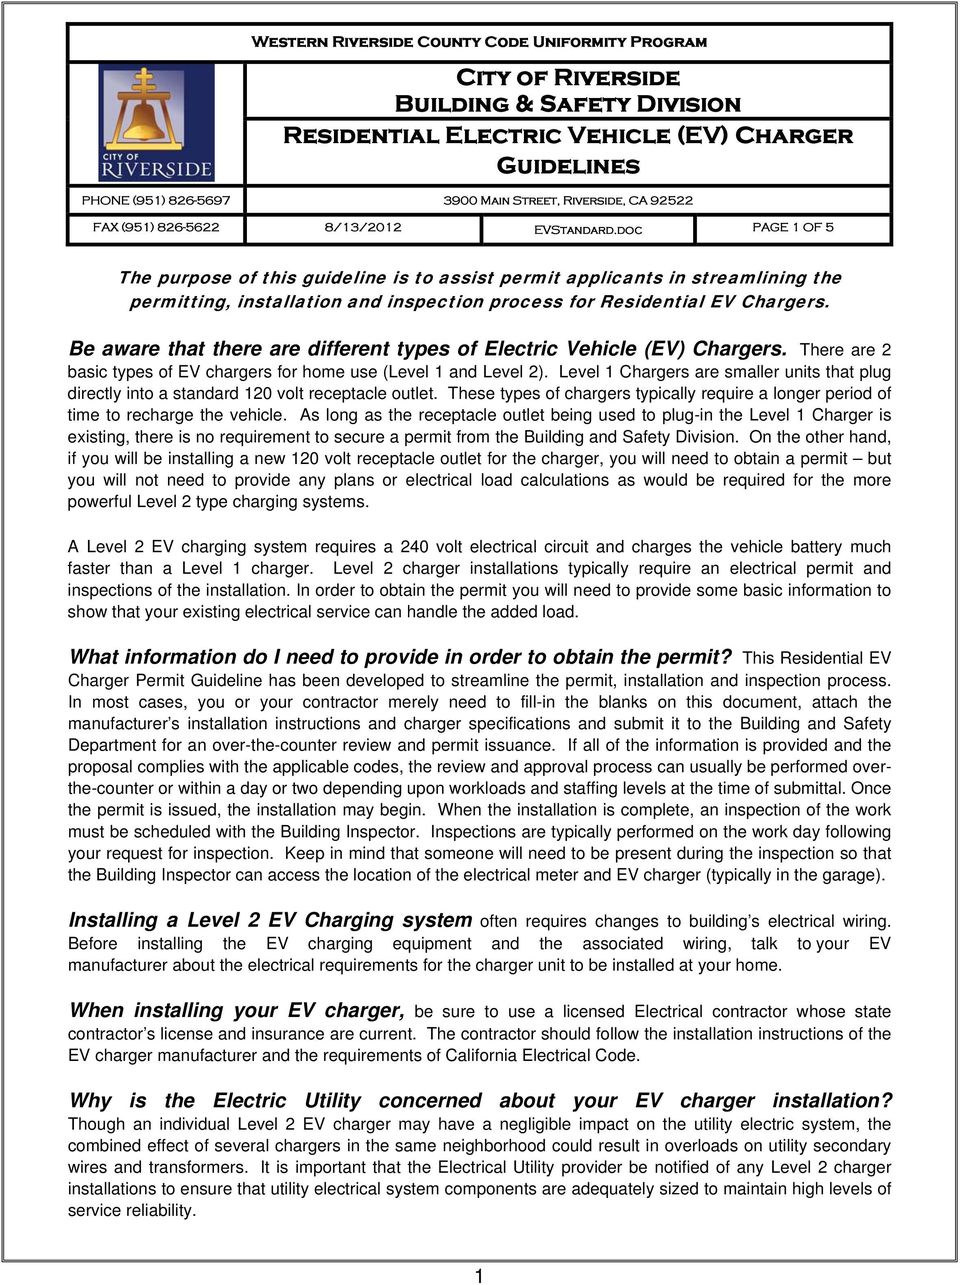 City Of Riverside Building Safety Division Residential Electric Electrical Wiring Types Doc Page 1 5 The Purpose This Guideline Is To Assist Permit Applicants In